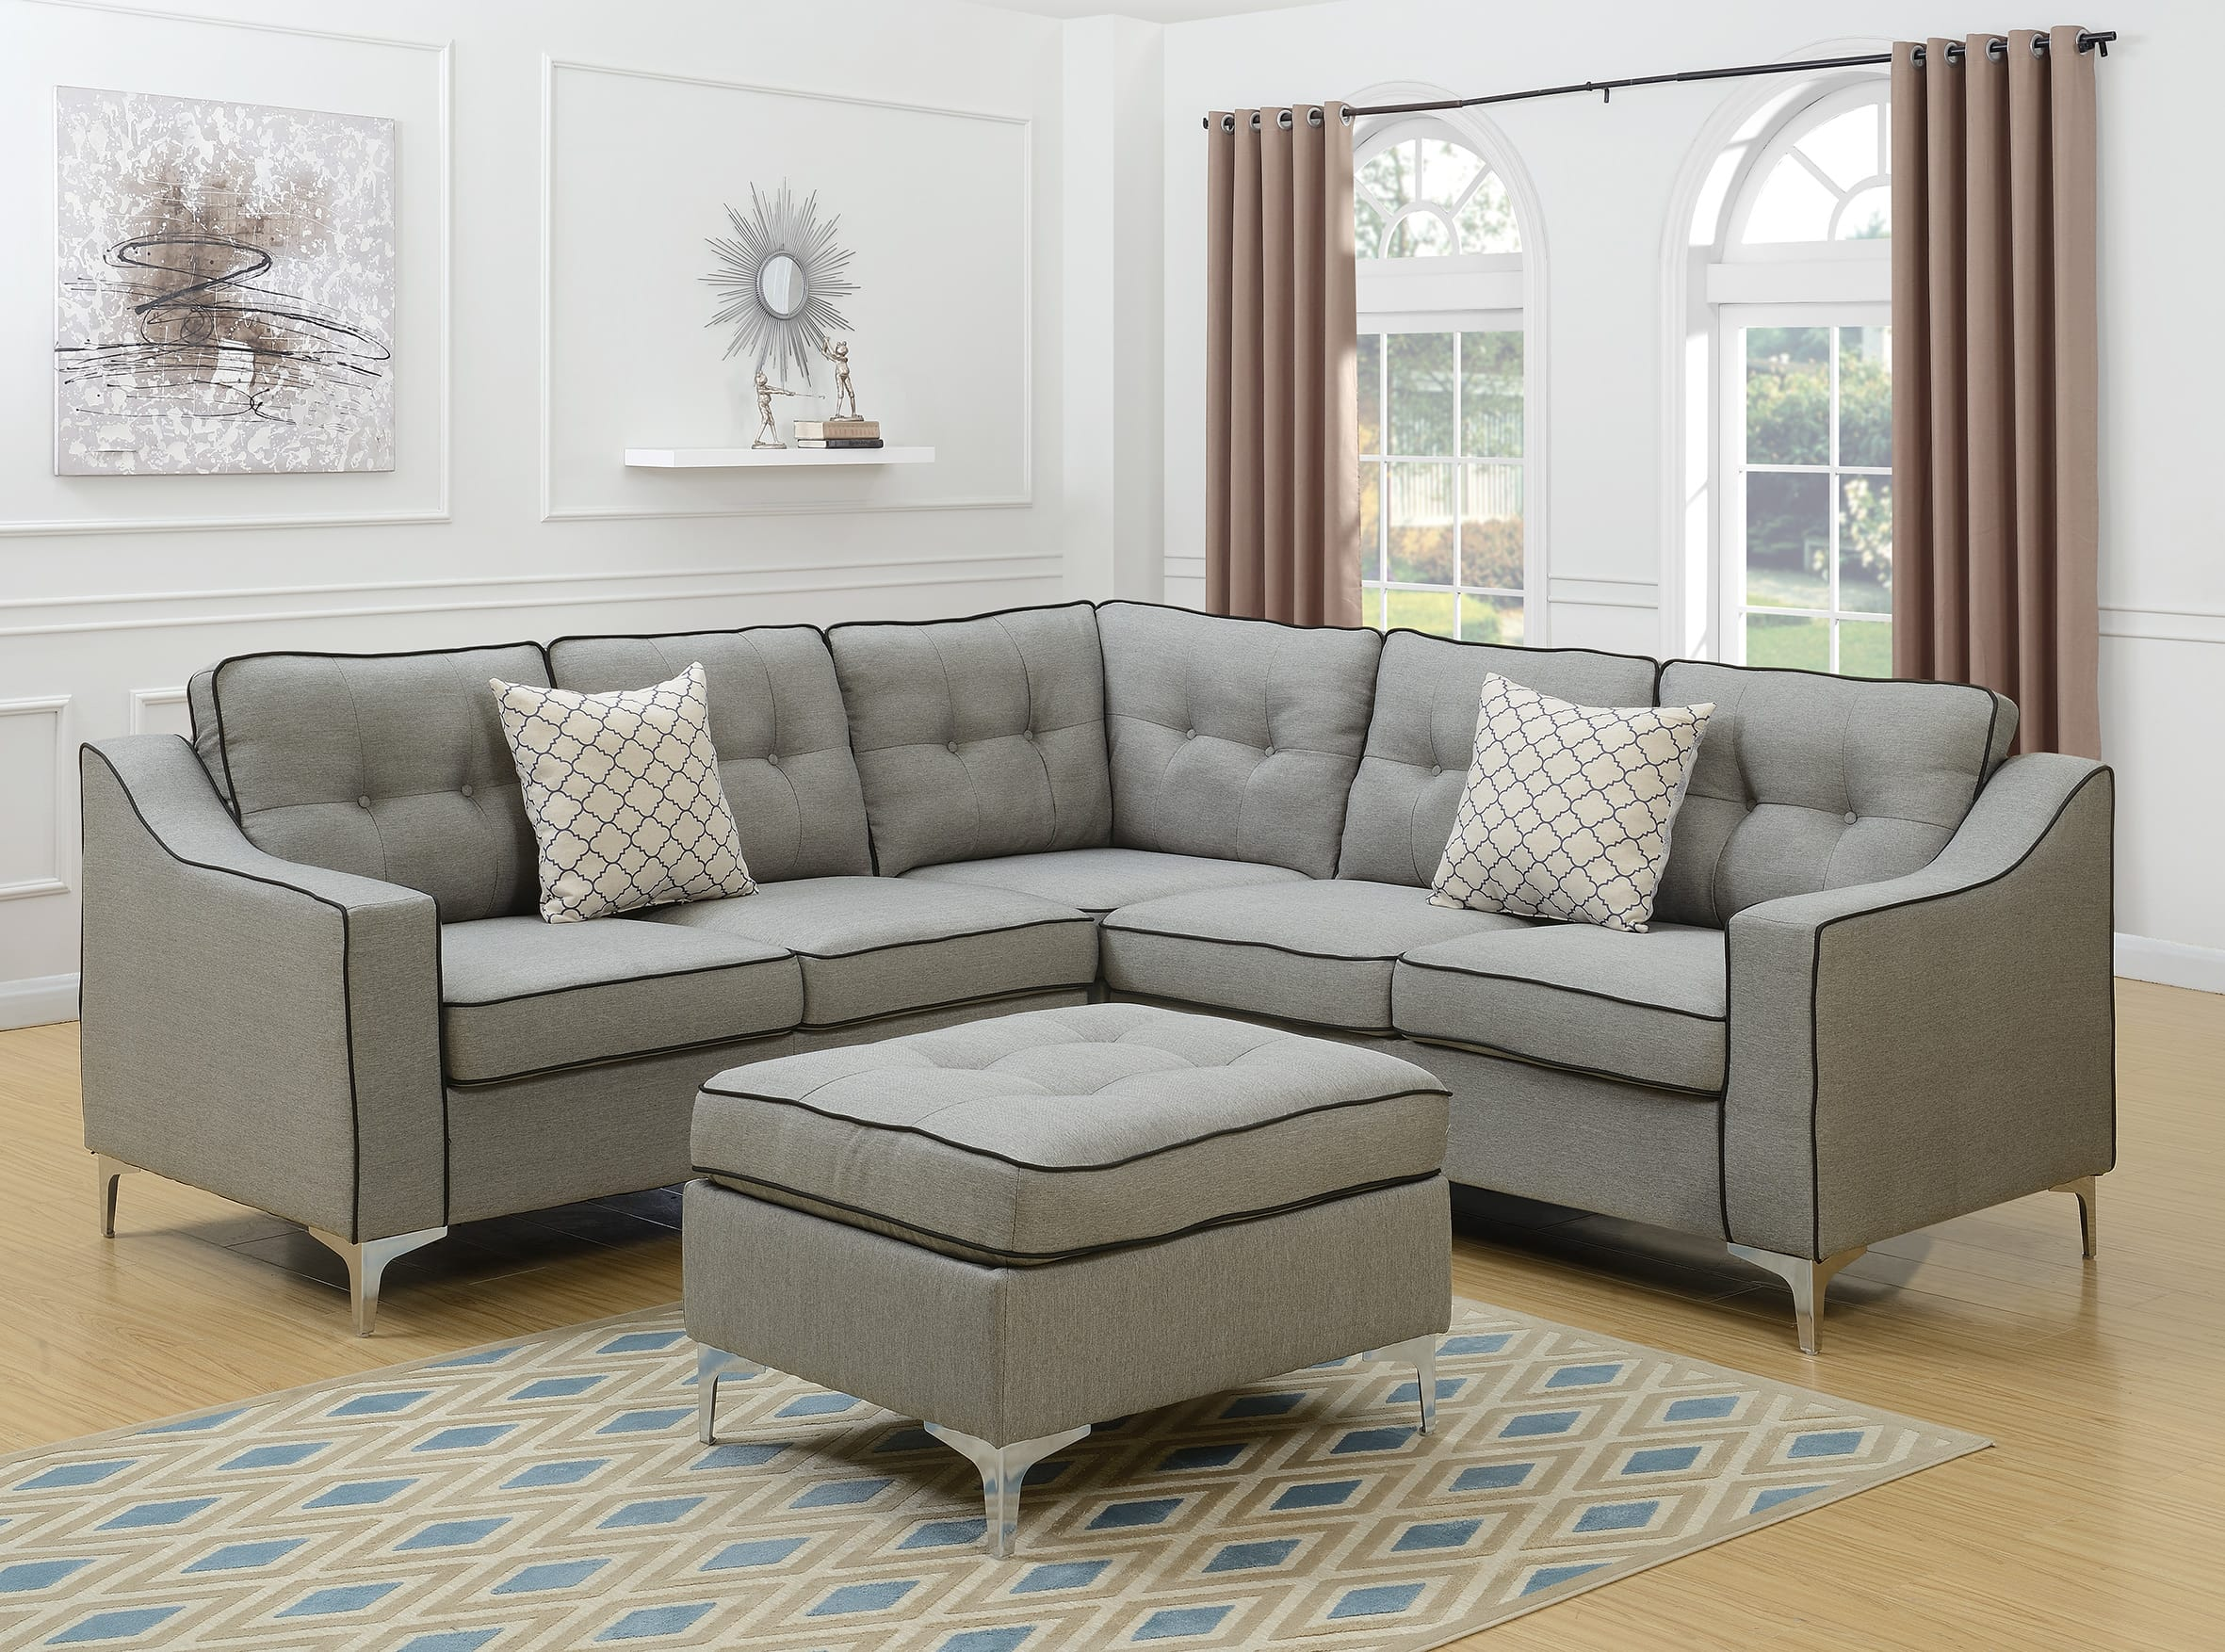 f6998 light gray 4 pcs sectional sofa set by poundex